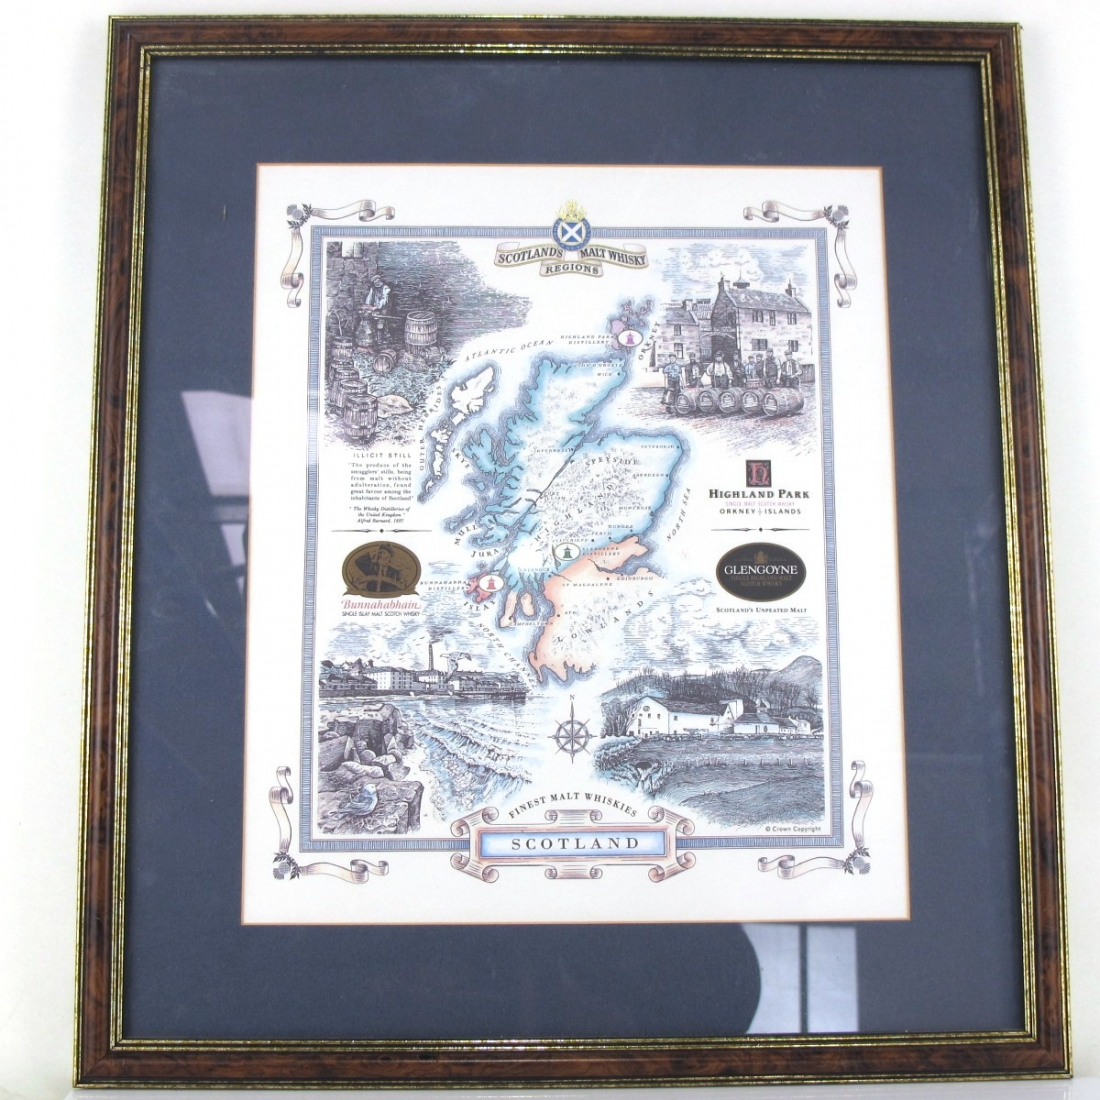 Scotland's Malt Whisky Regions Framed Poster